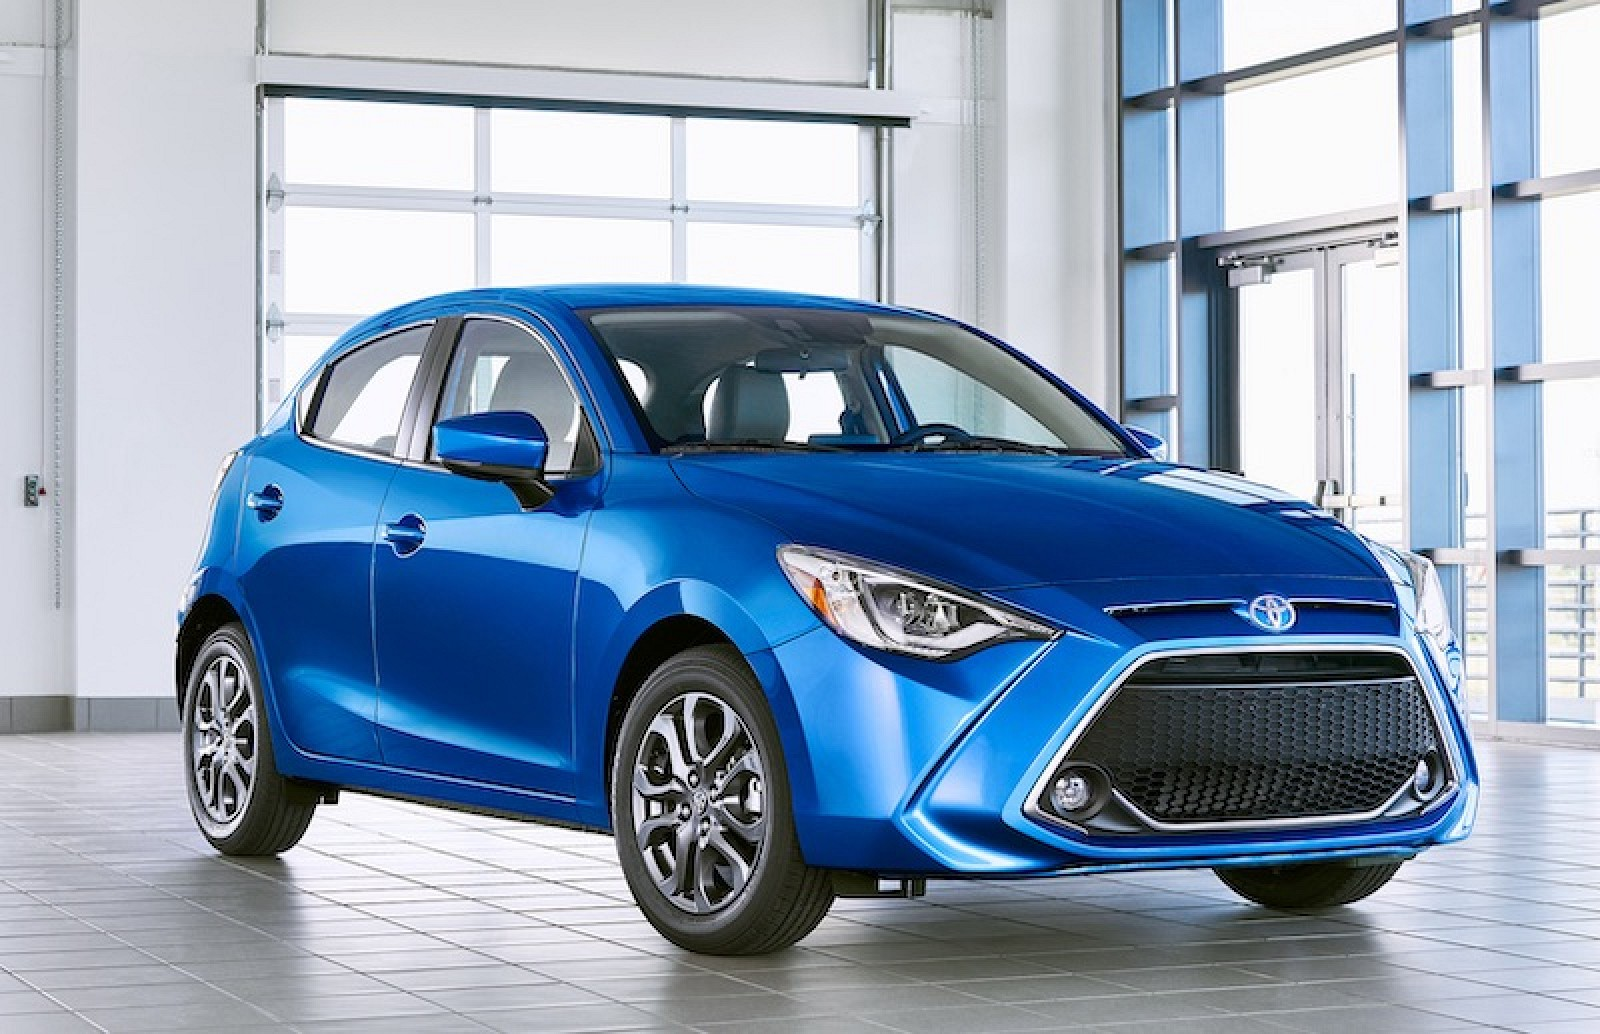 toyota continues carplay rollout with new 2020 yaris. Black Bedroom Furniture Sets. Home Design Ideas